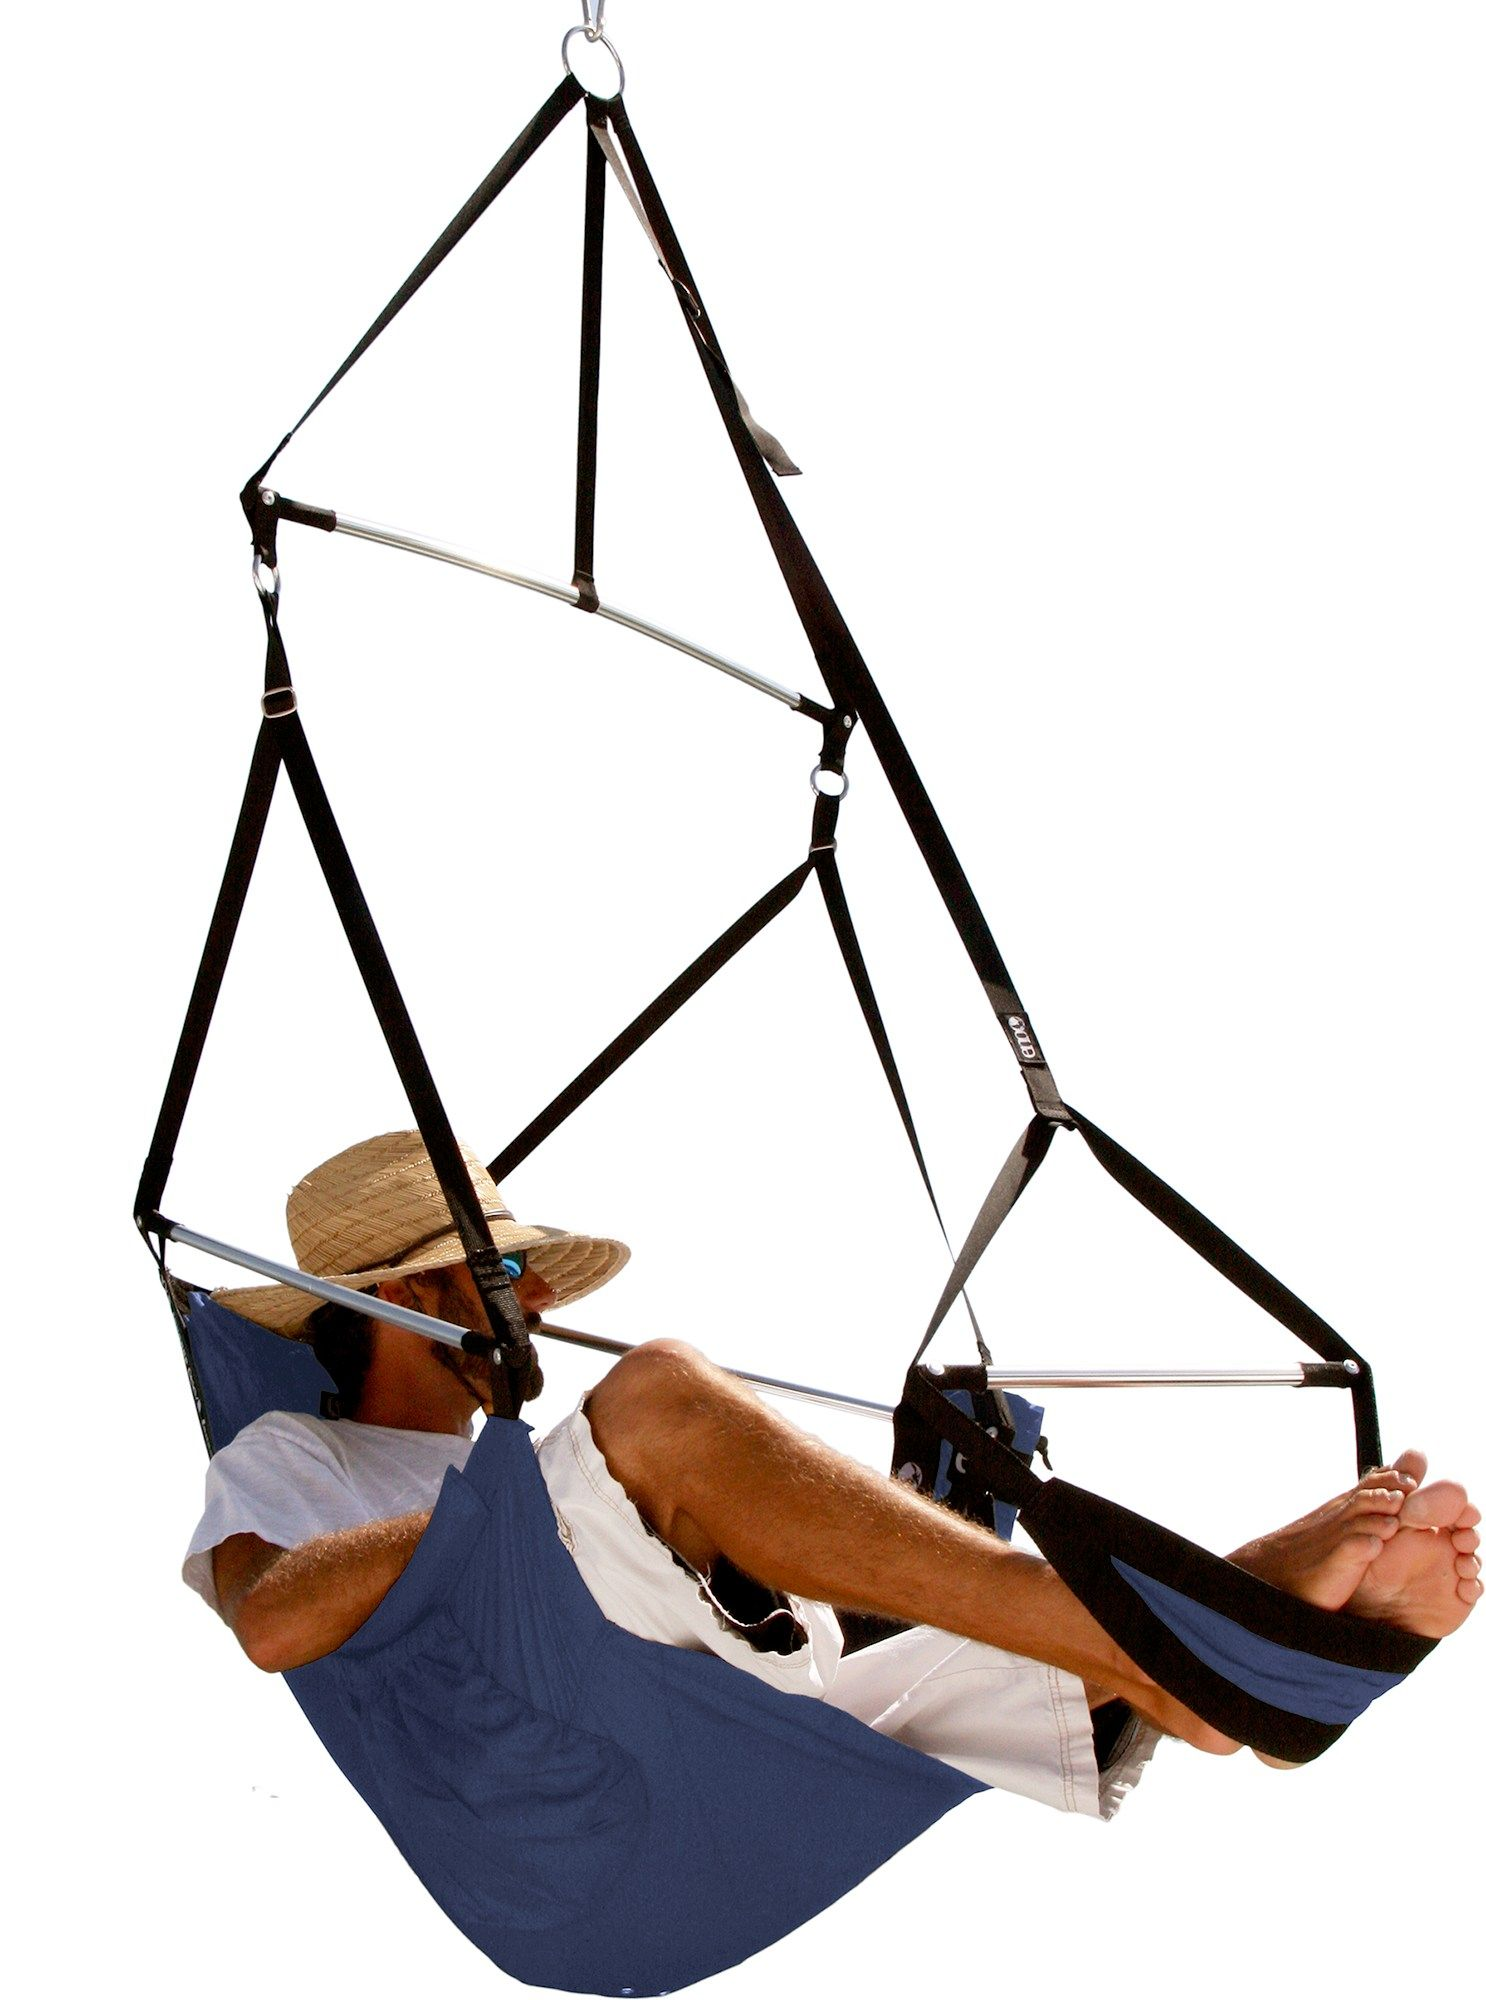 Kick Back In The Comfortable Eno Lounger Hanging Chair Reigifts